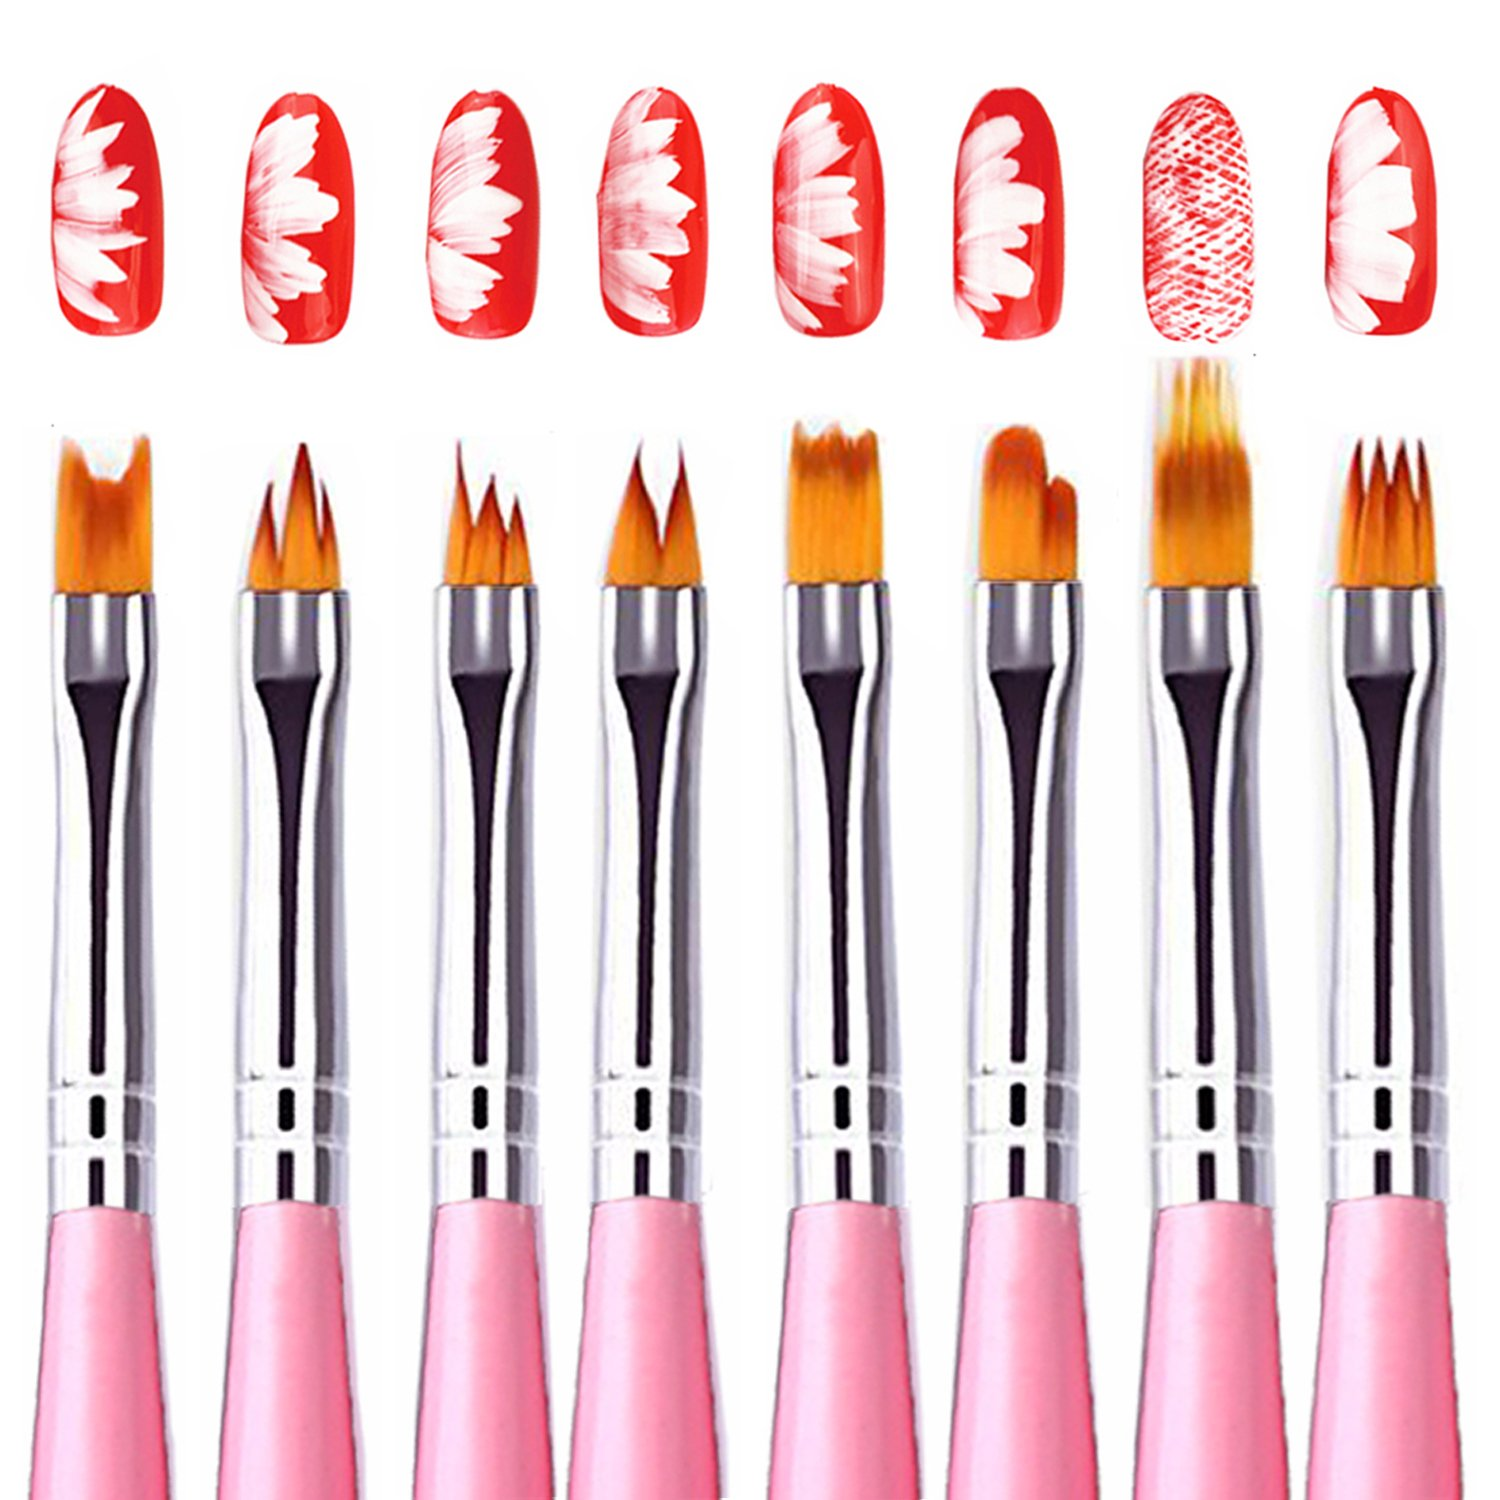 1500x1500 Kingtree Pcs Nail Art Brush Set, Gradient Acrylic